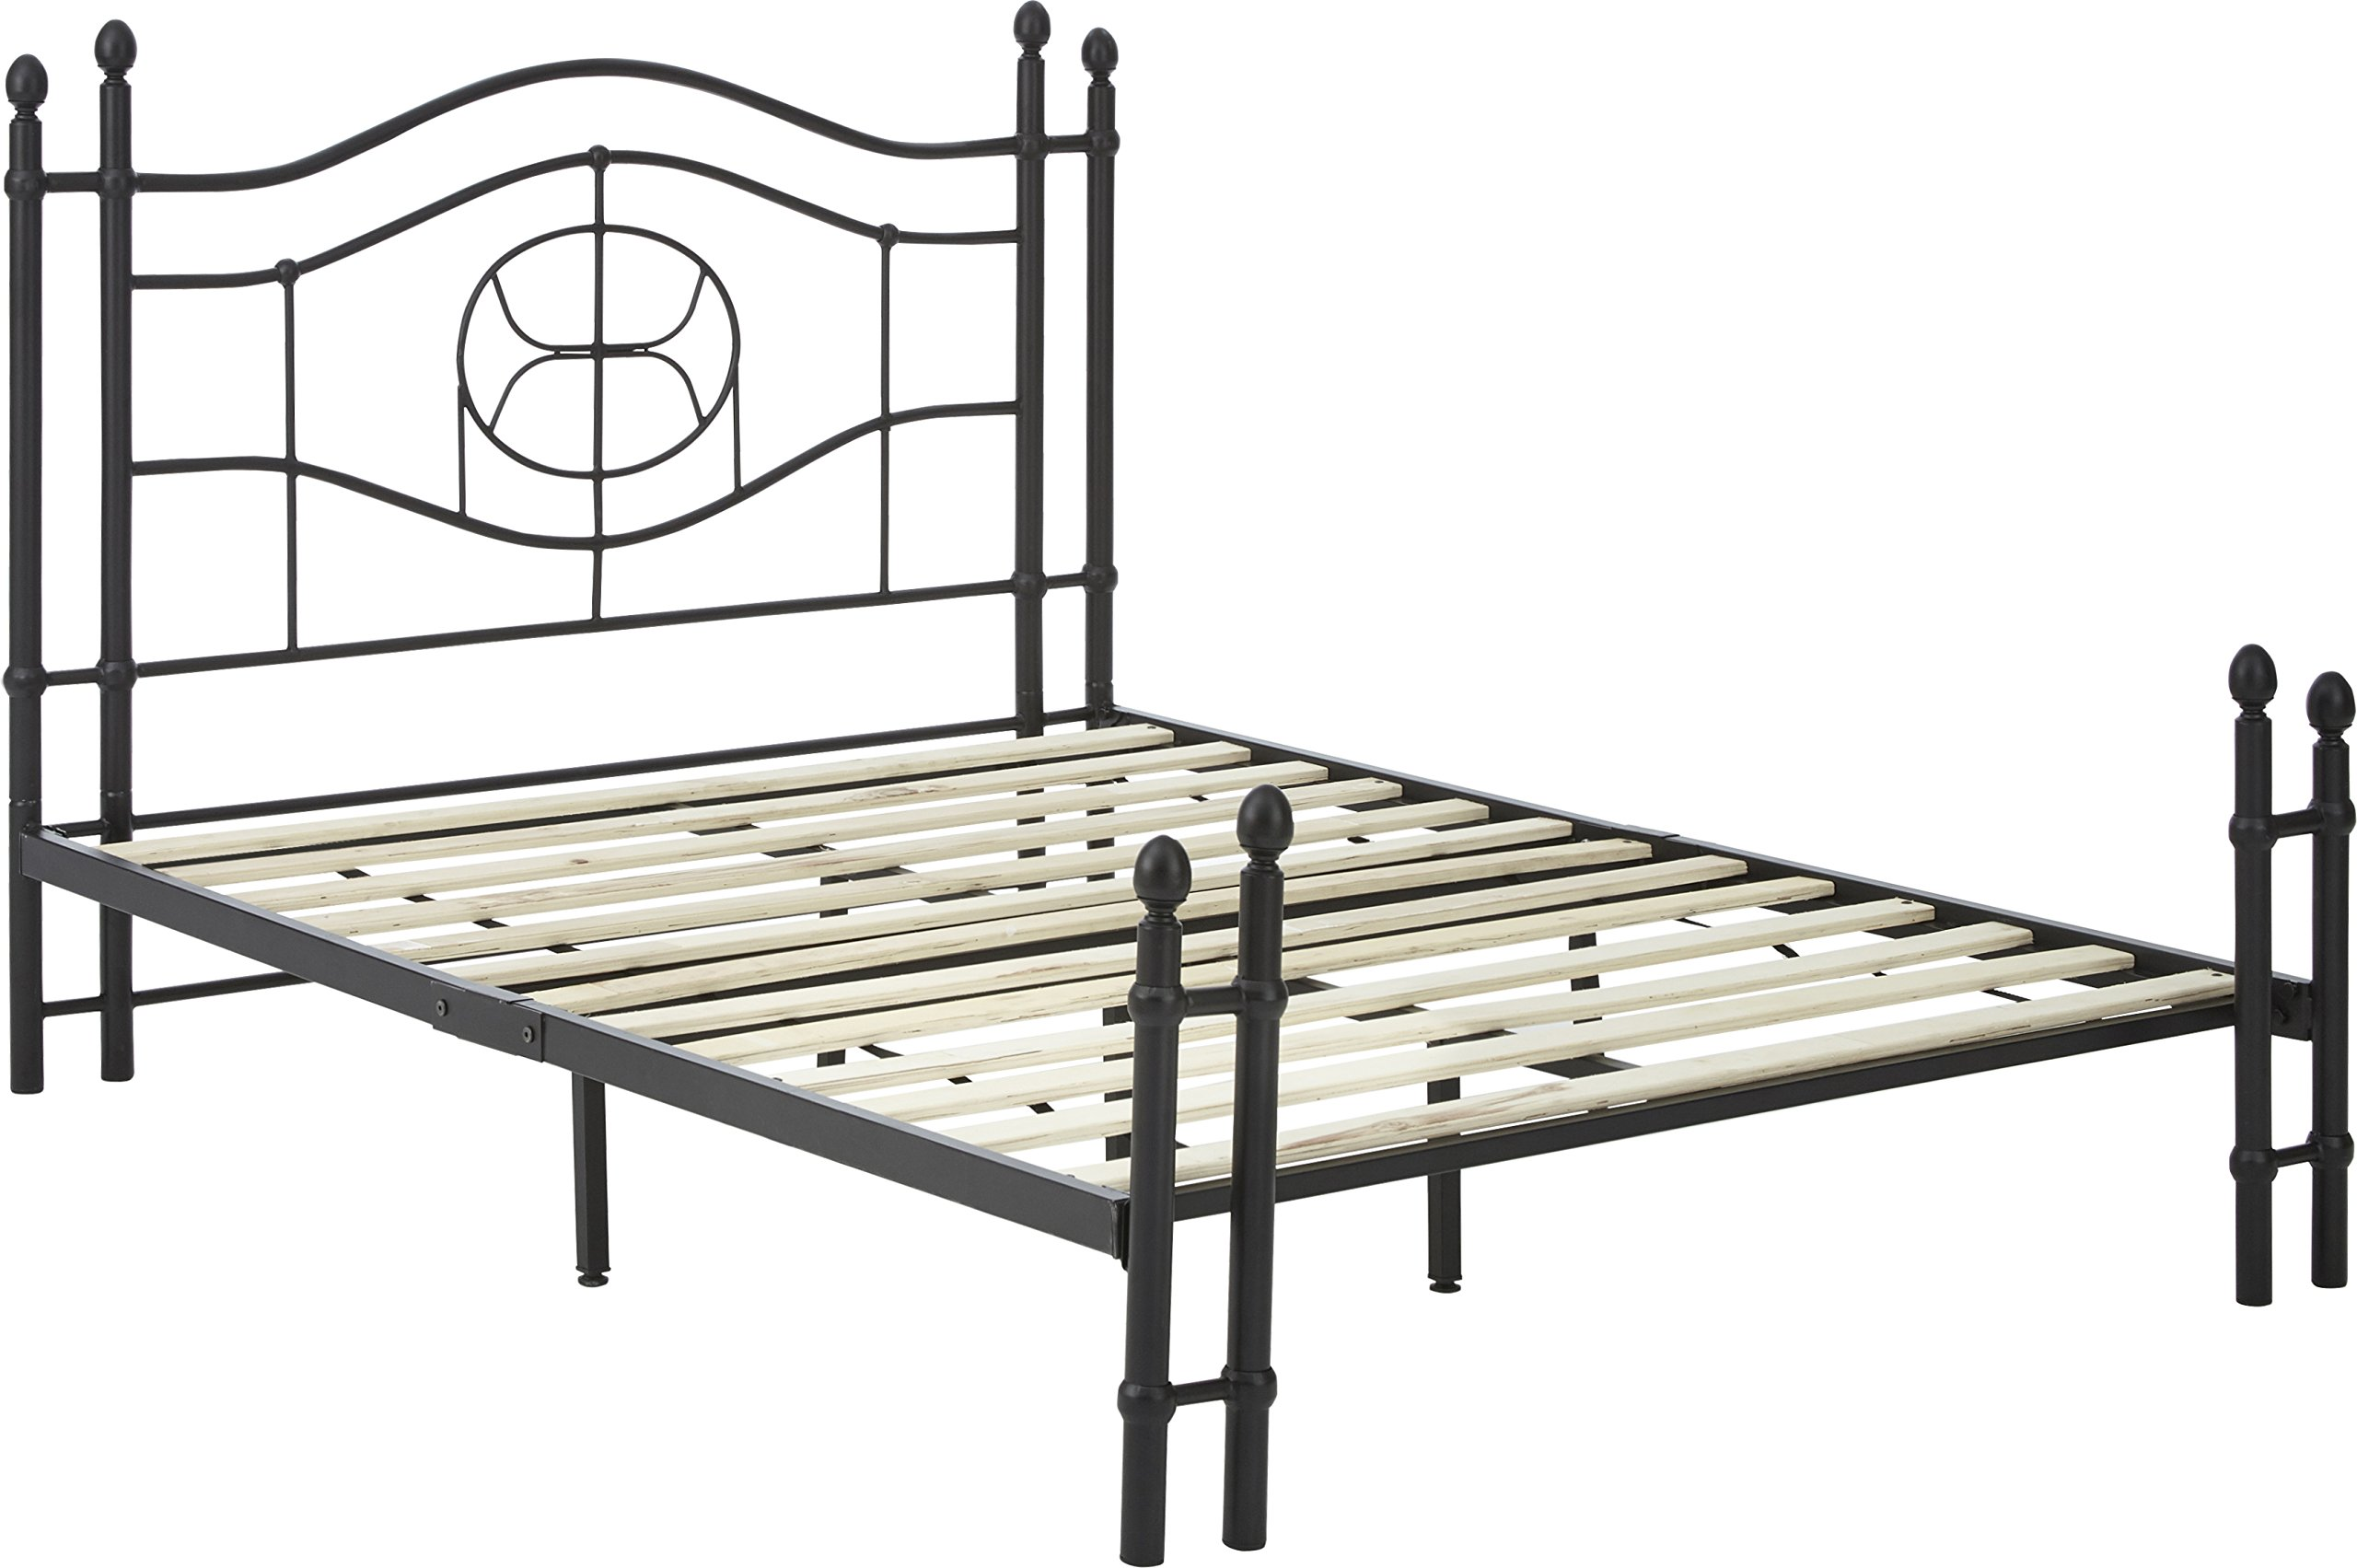 Flex Form Evie Metal Platform Bed Frame / Mattress Foundation with Headboard and Footboard, Queen